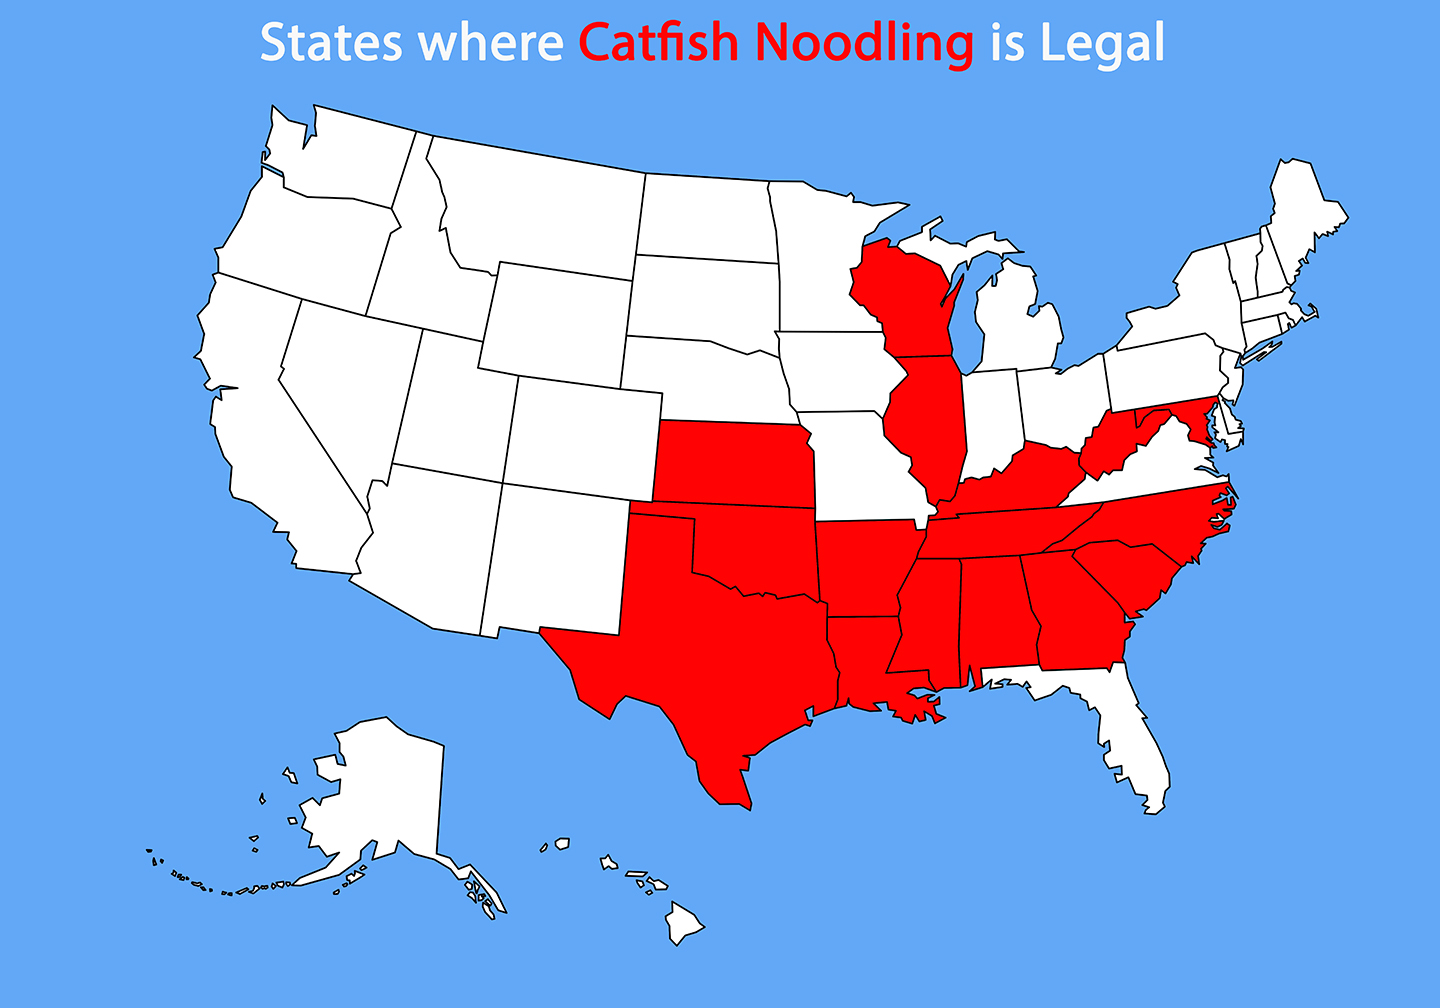 A map of where Catfish noodling is legal in the US.